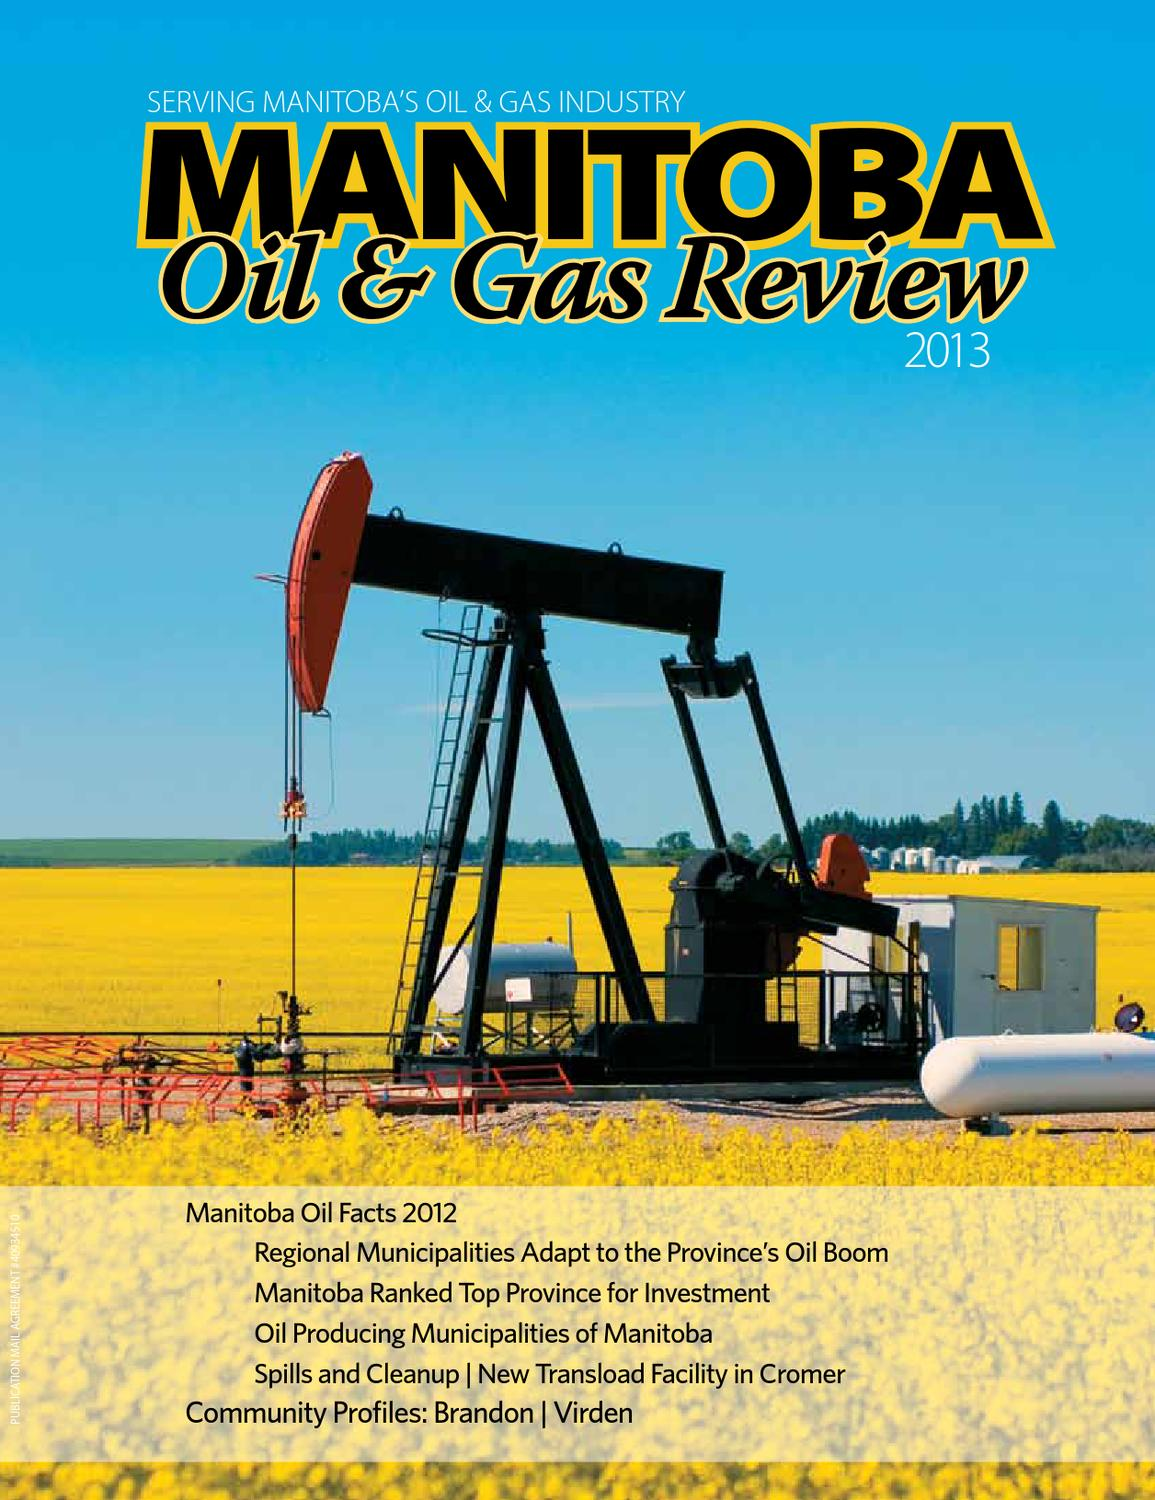 Manitoba Oil & Gas Review by DEL Communications Inc. - issuu